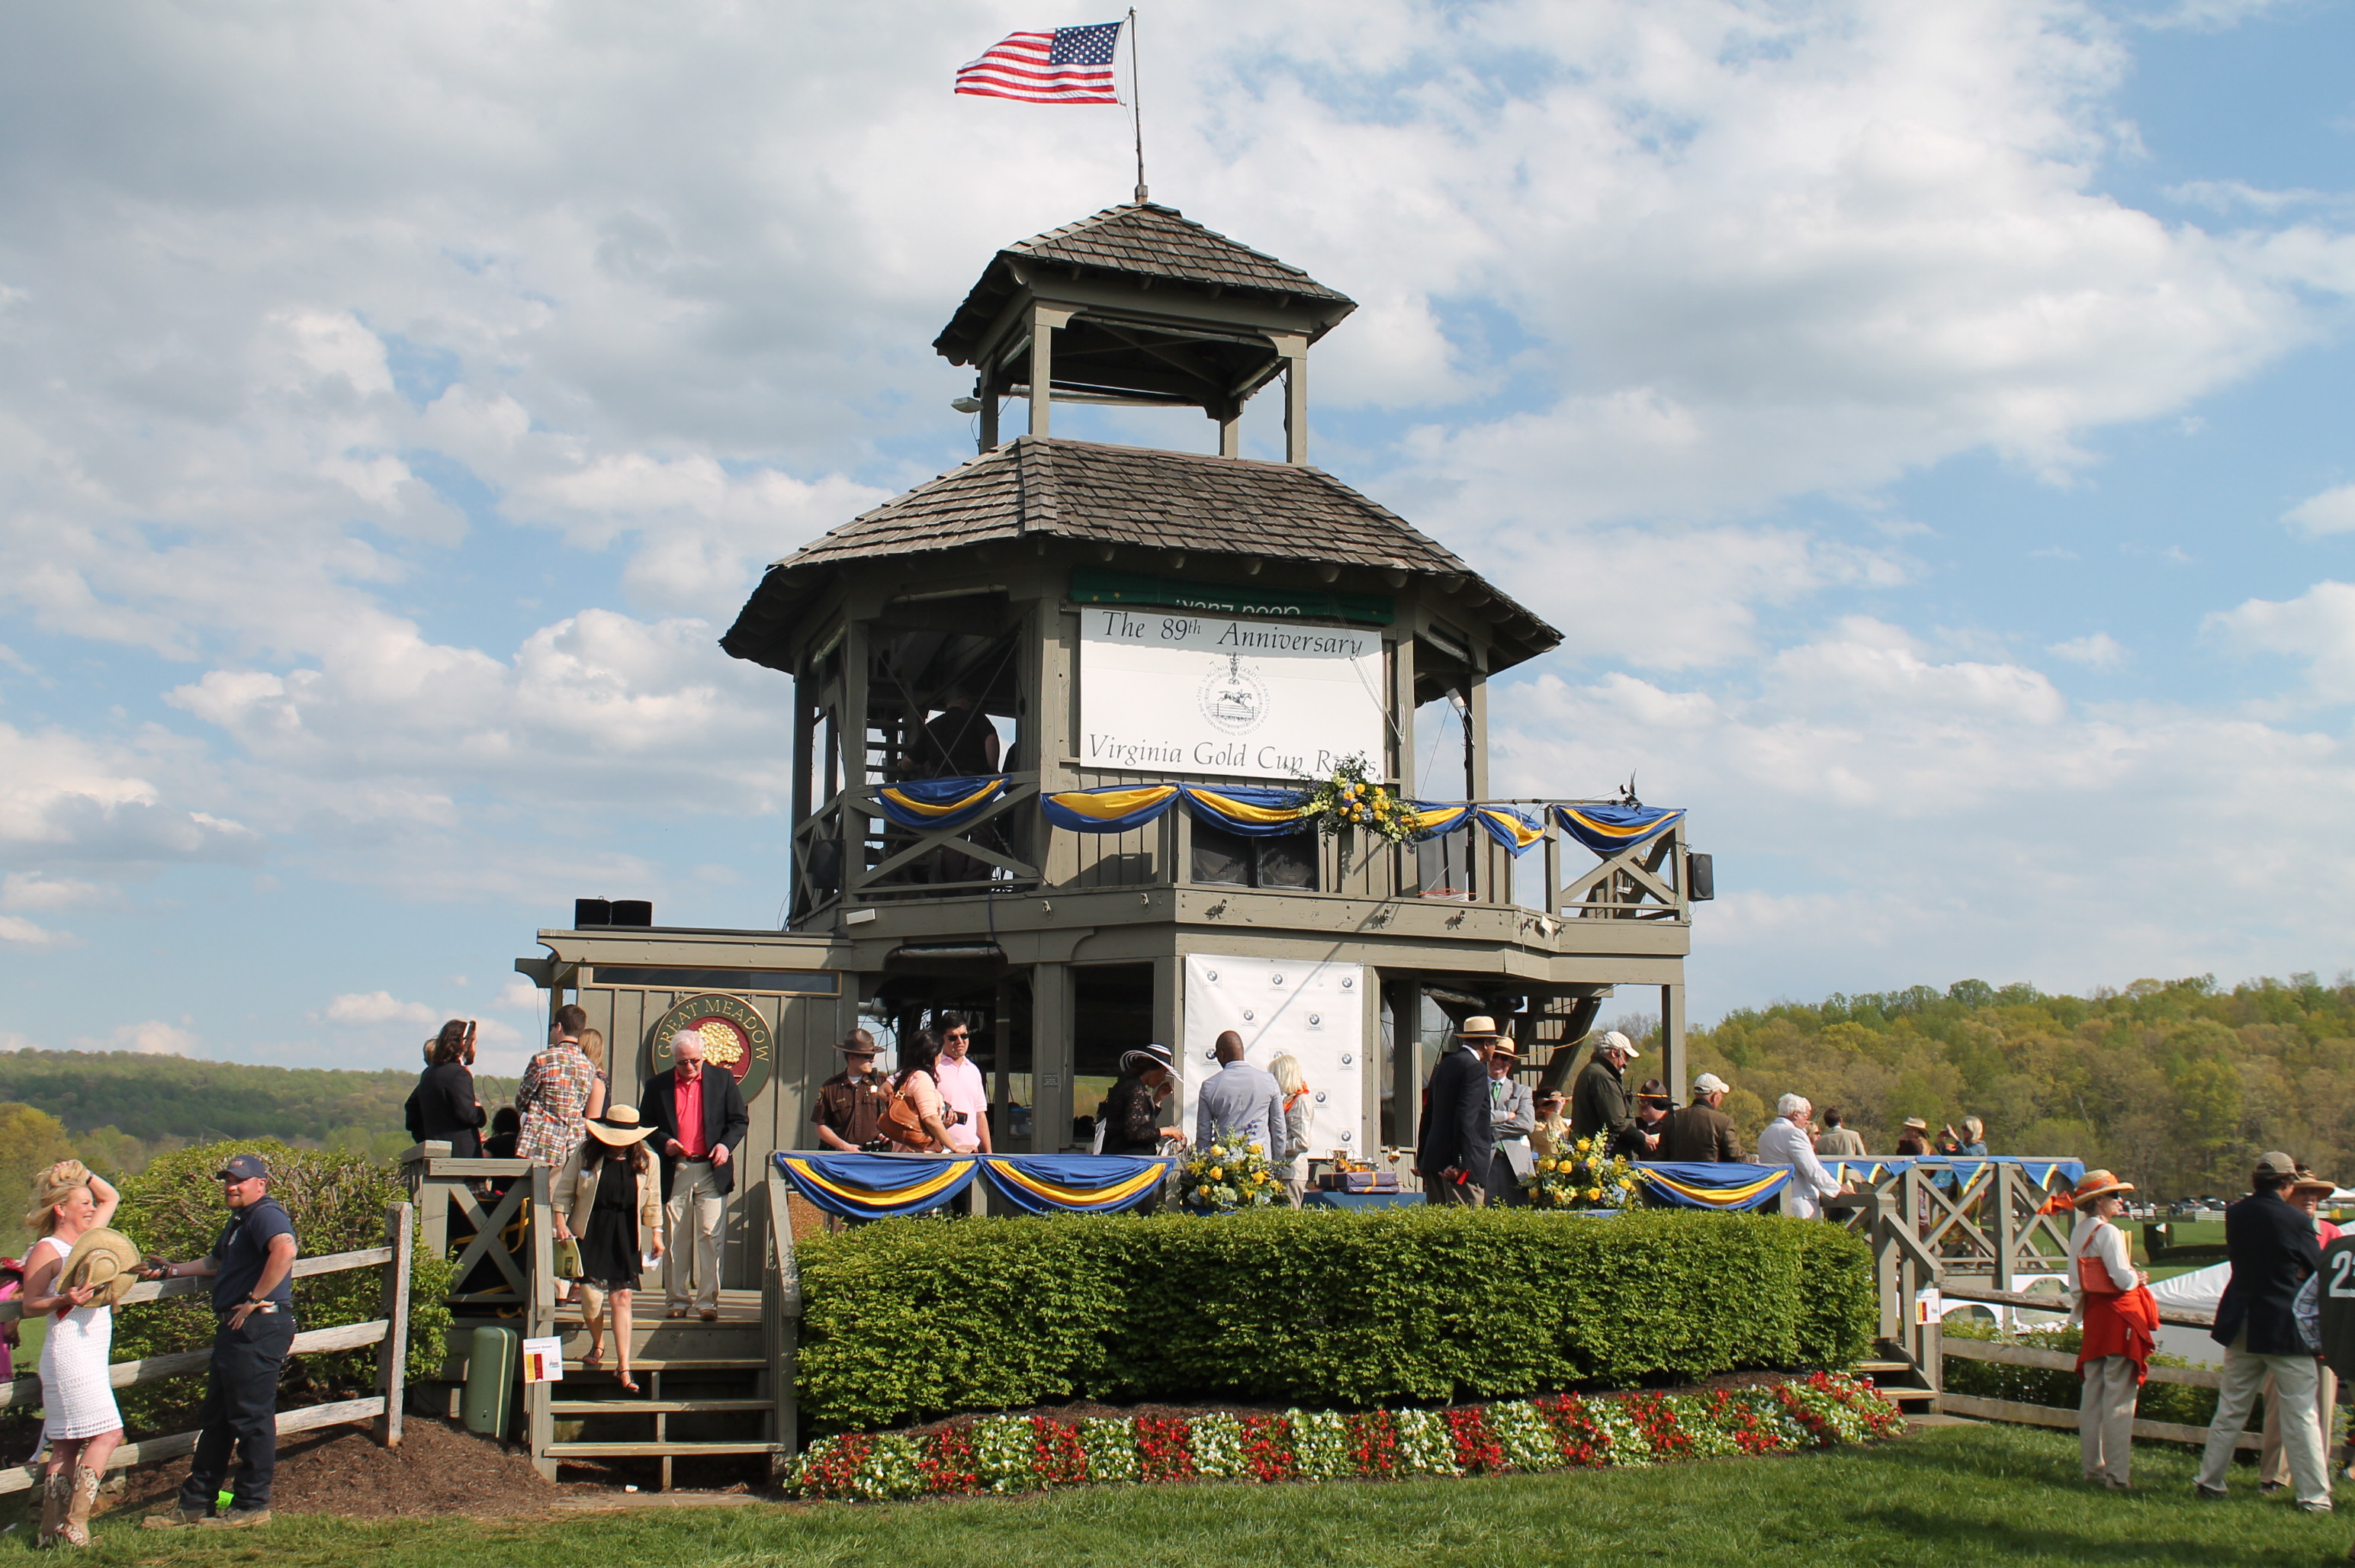 Virginia_Gold_Cup_Plains_2014_Tower